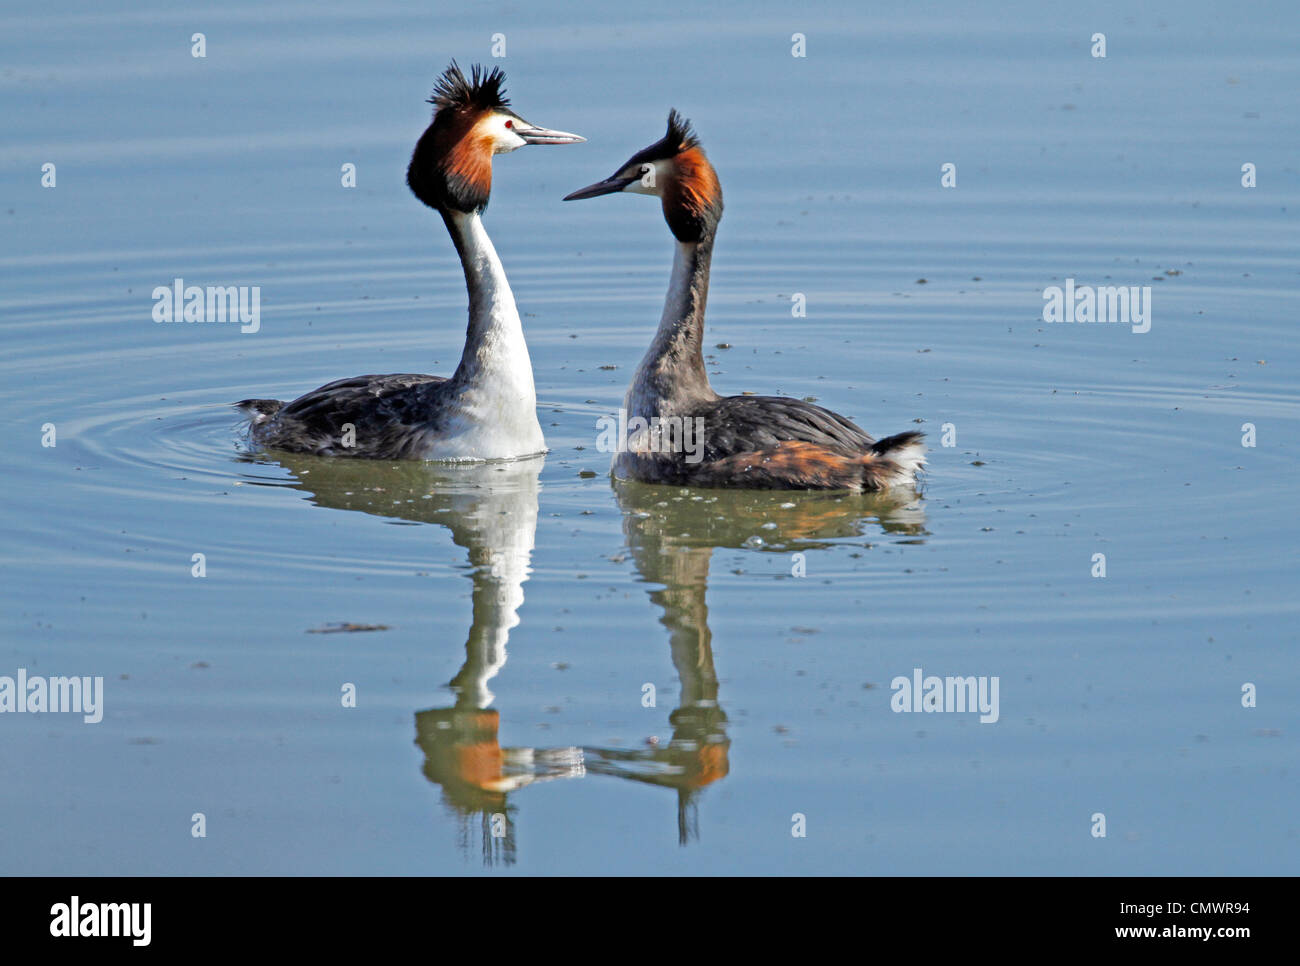 Great Crested Grebe (Podiceps cristatus) - Stock Image